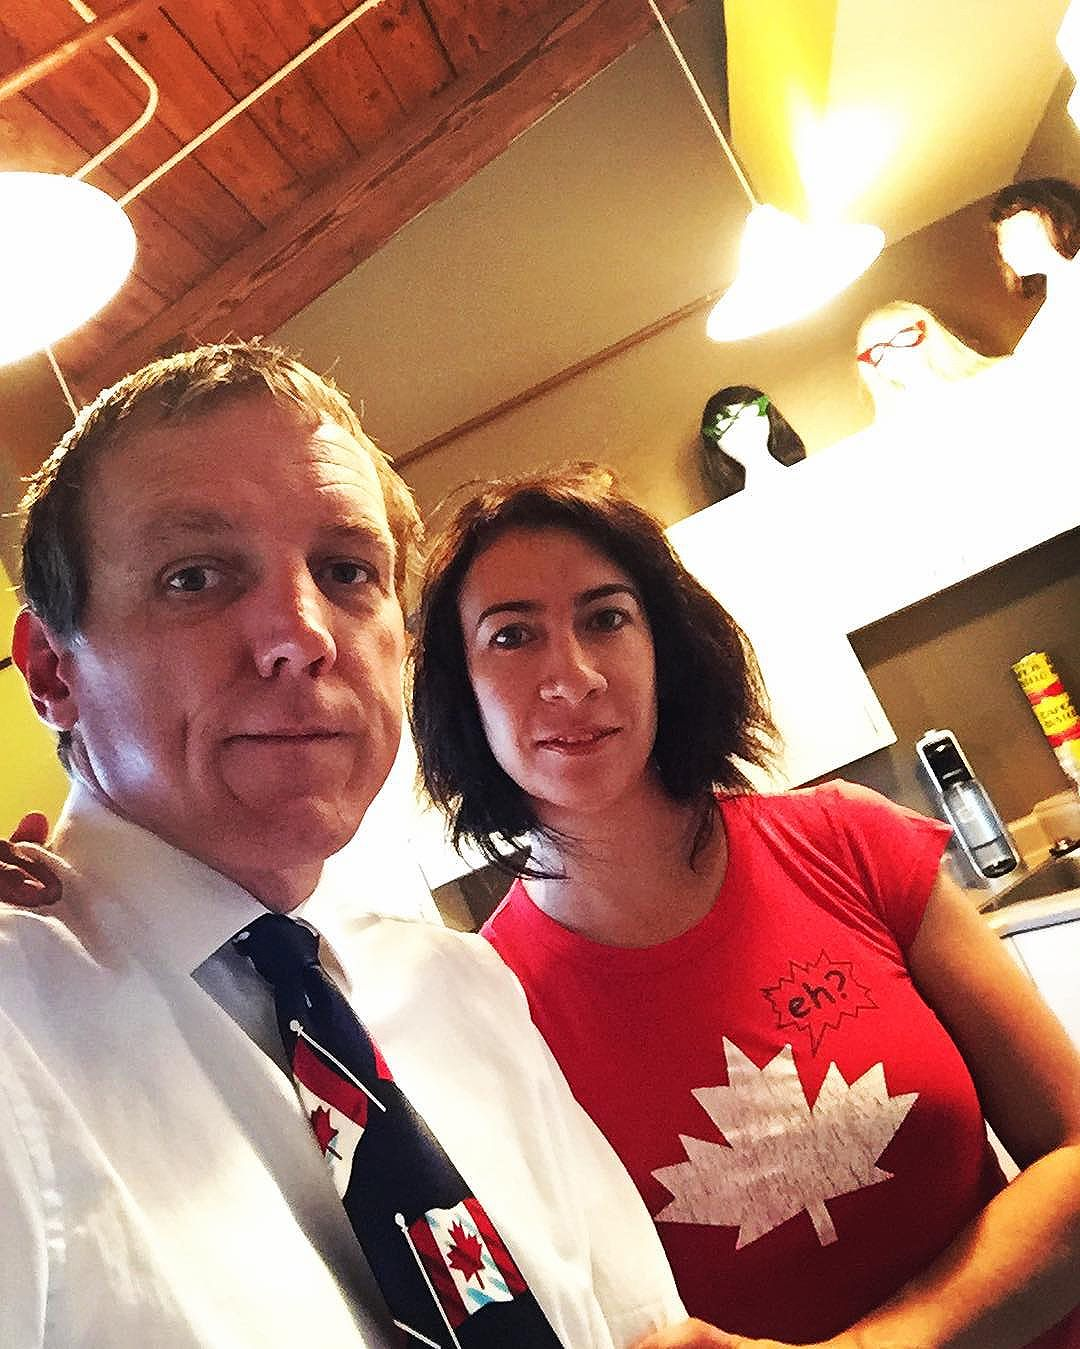 Happy #canadaday #tiedayfriday! – had a great dream of Mamie last night and wore her tie today. Listened to The Hip all morning and @sundilu sports a great Canada shirt as well.